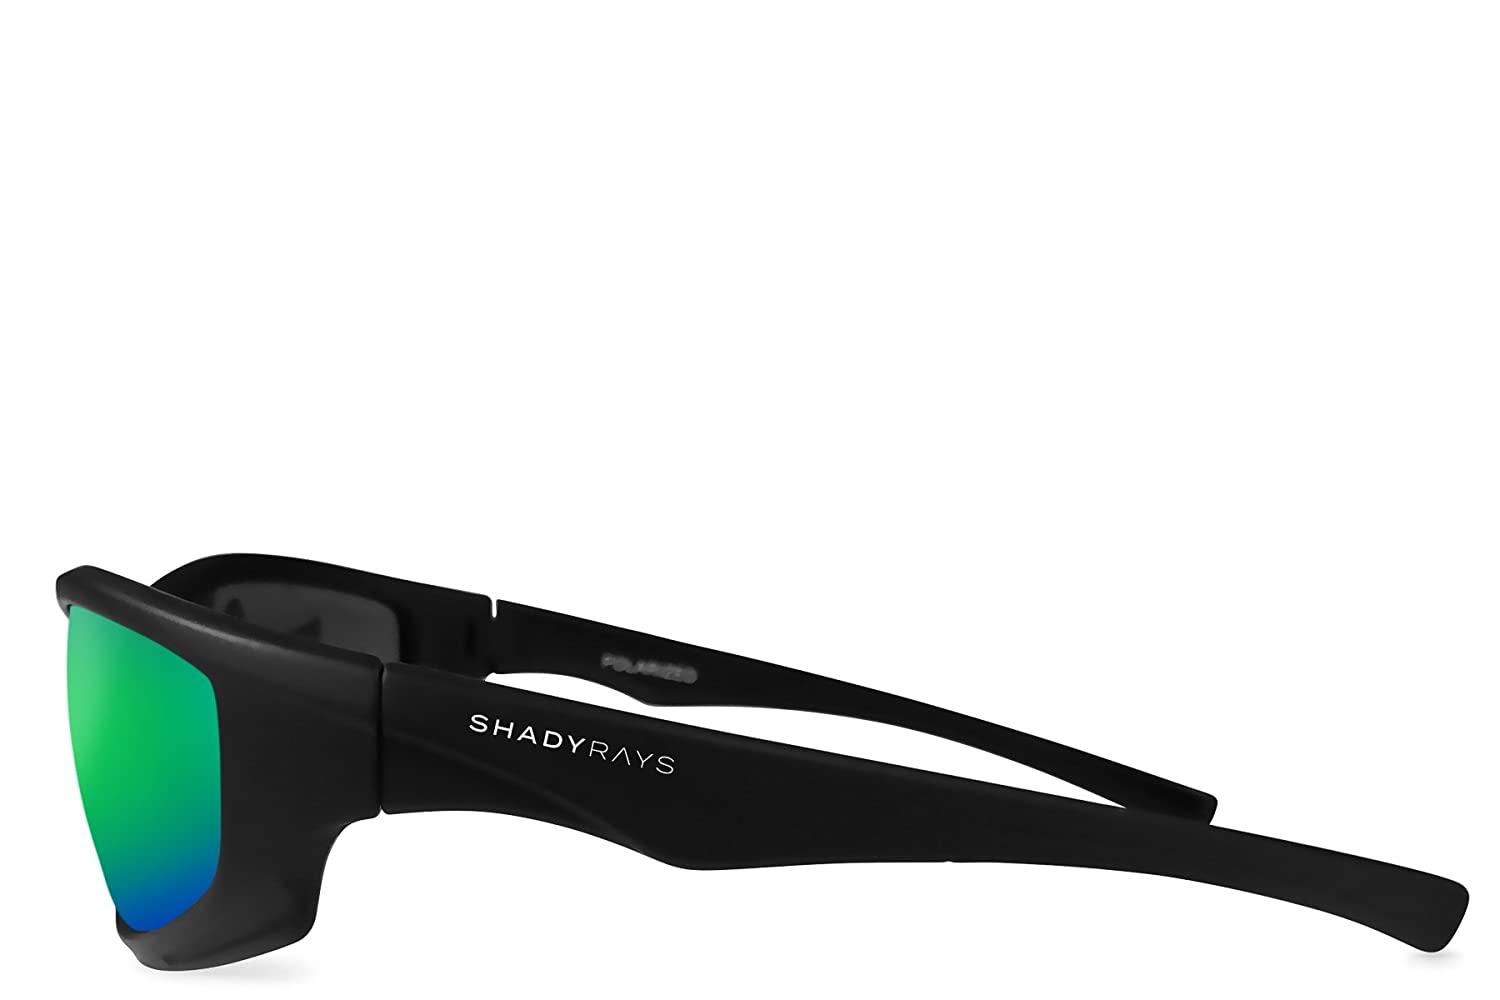 415d7bbd3c Amazon.com  Shady Rays Polarized Sport Sunglasses X Series